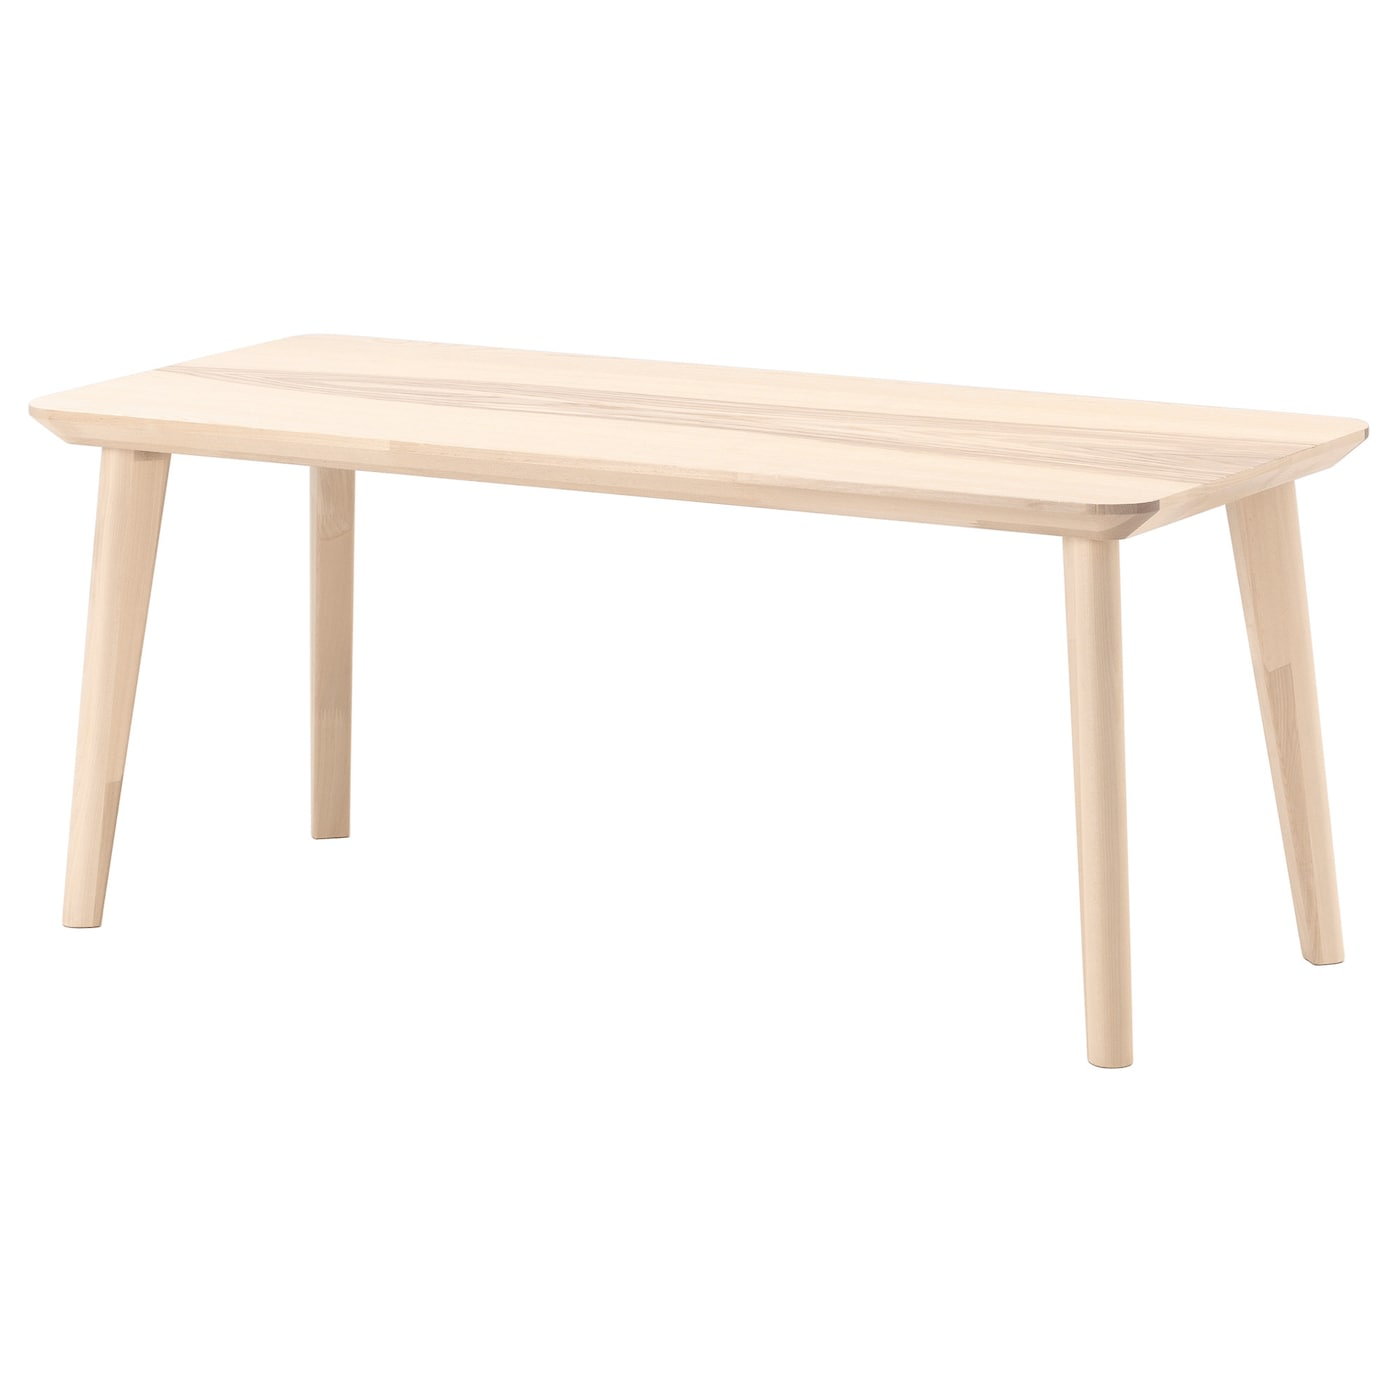 Lisabo coffee table ash veneer 118x50 cm ikea - Table basse avec led ...